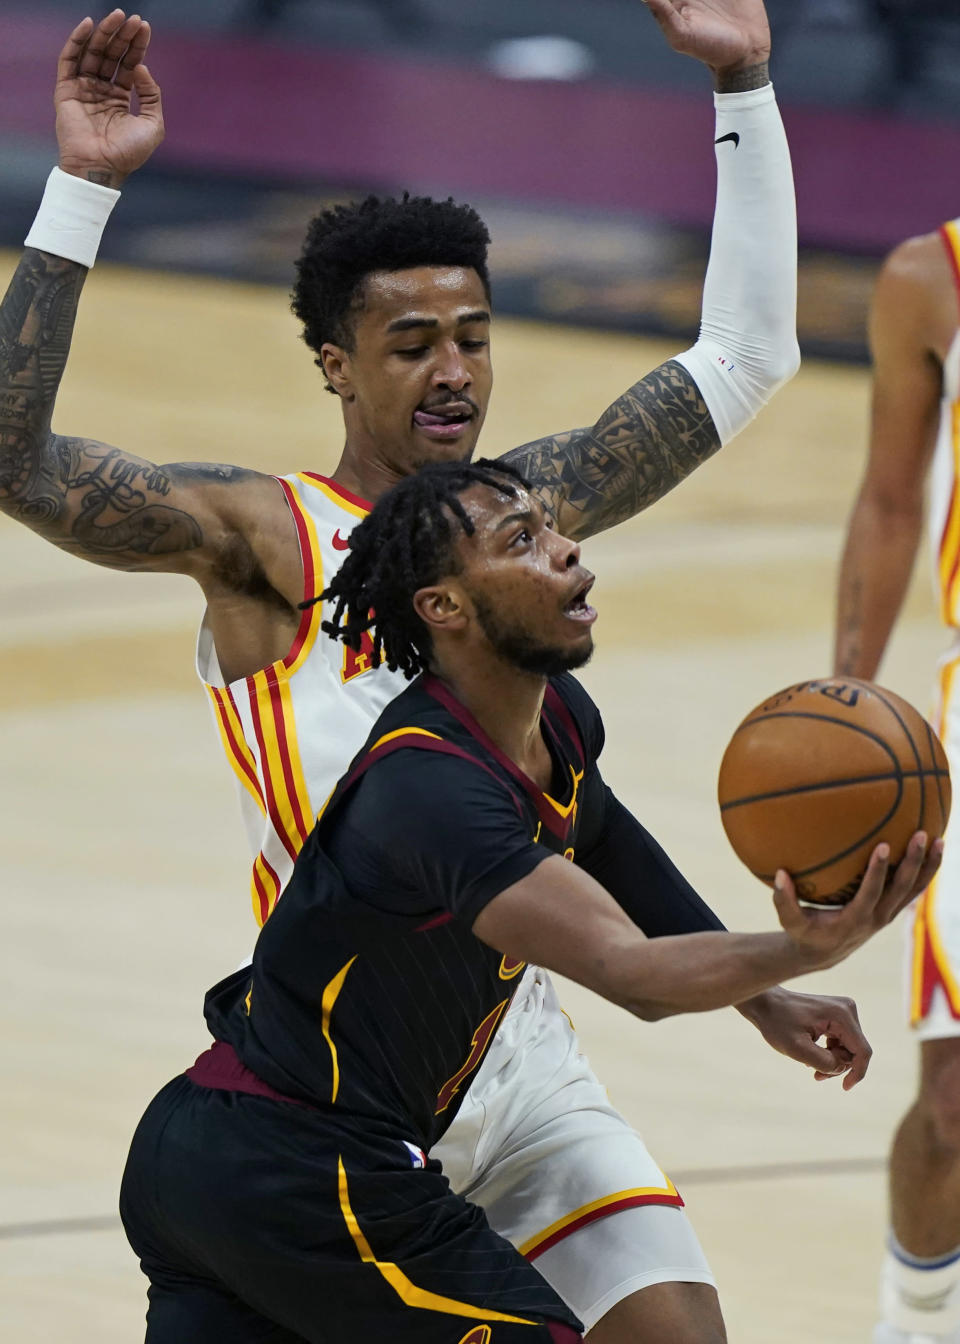 Cleveland Cavaliers' Darius Garland, front, drives to the basket against Atlanta Hawks' John Collins in the first half of an NBA basketball game, Tuesday, Feb. 23, 2021, in Cleveland. (AP Photo/Tony Dejak)